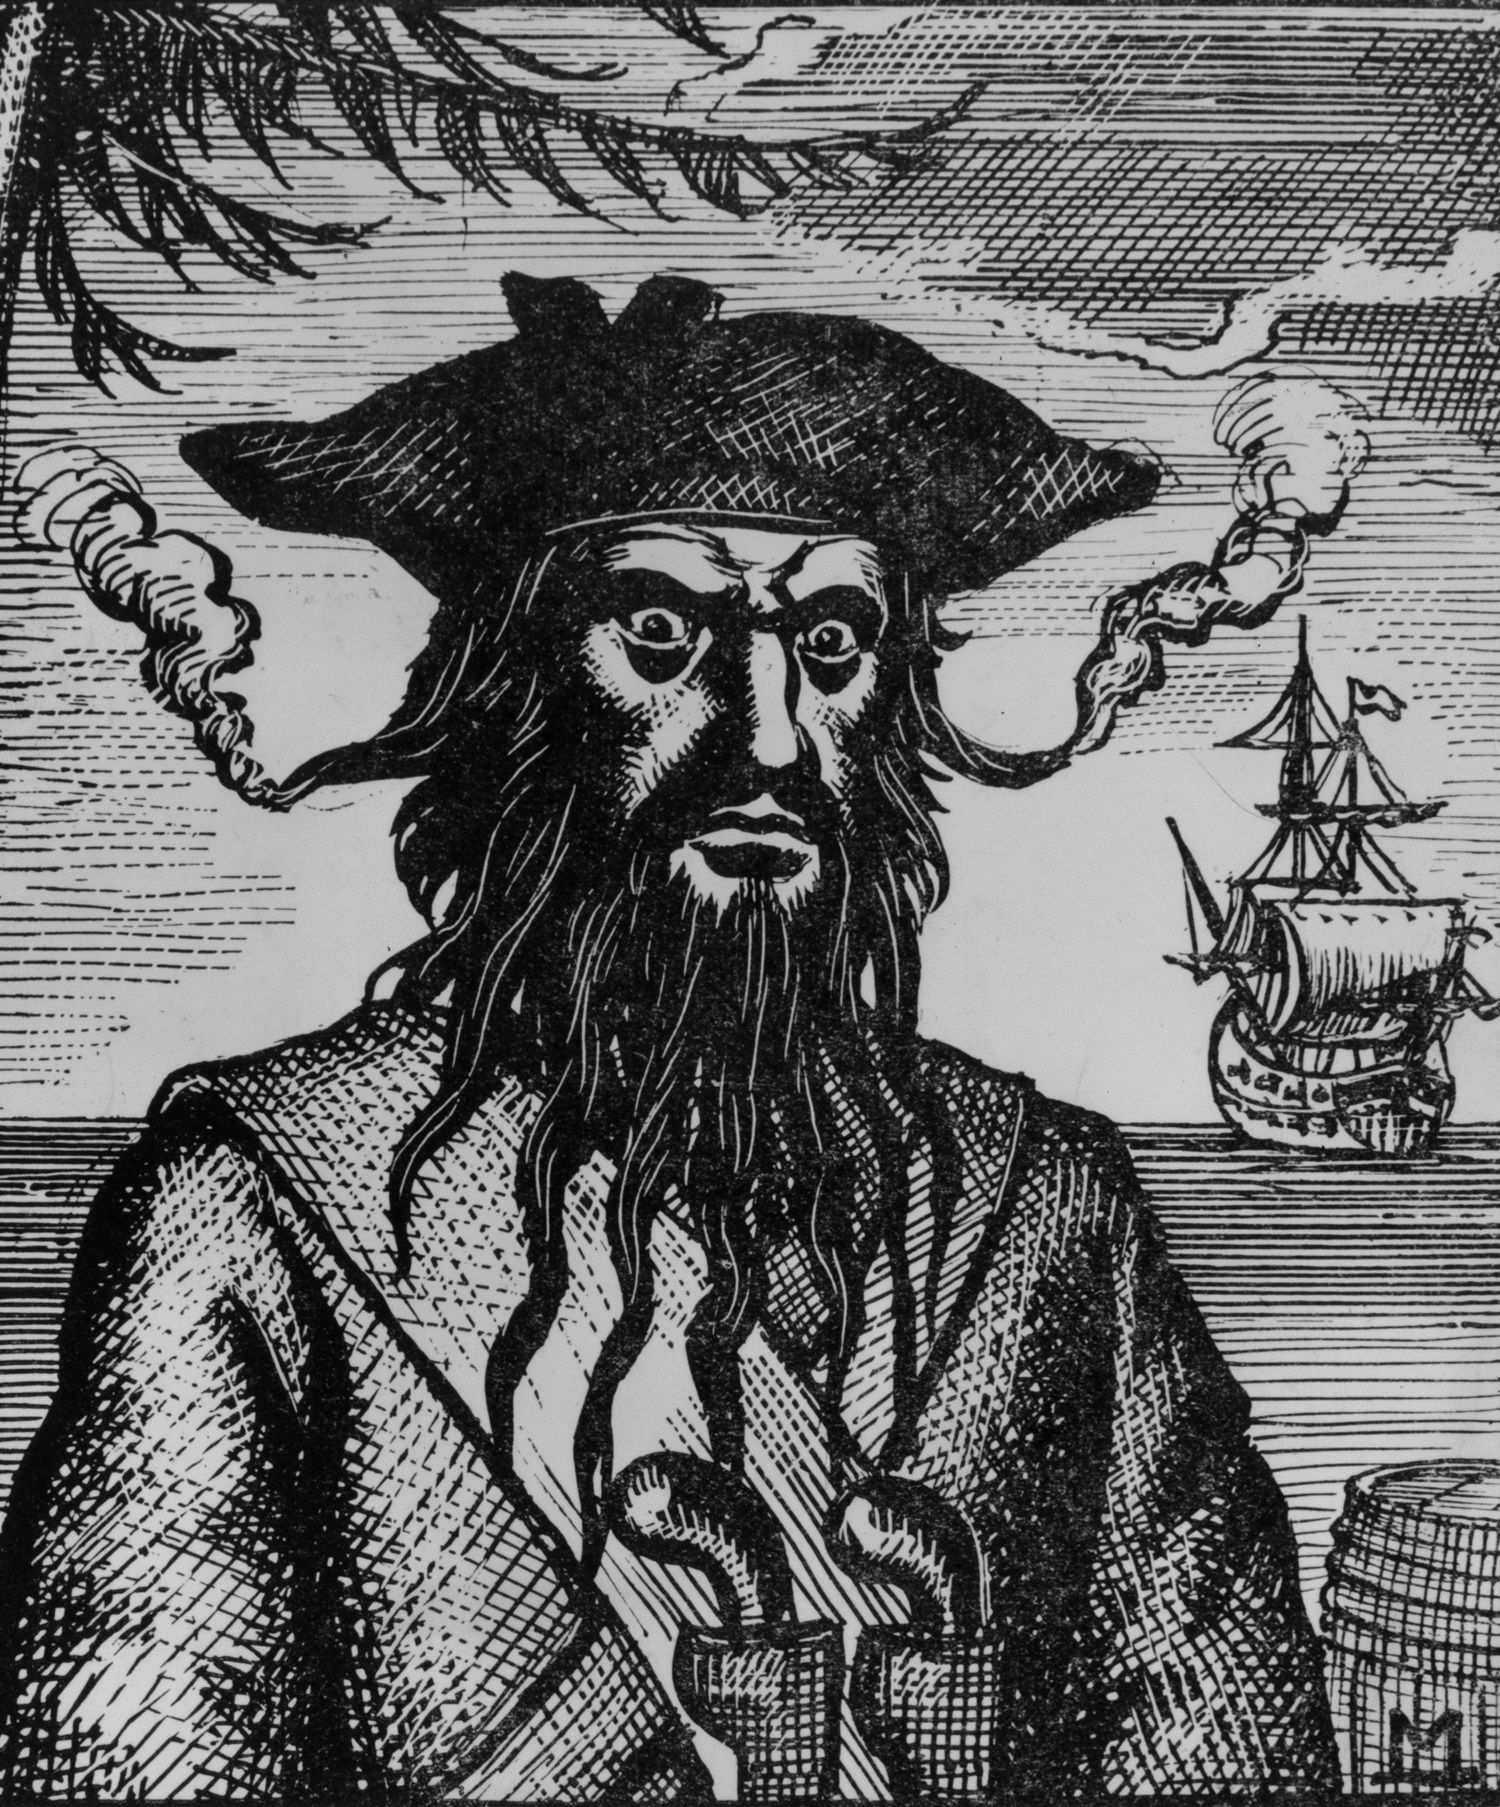 Blackbeard the Pirate: Myths, Truths and Legends